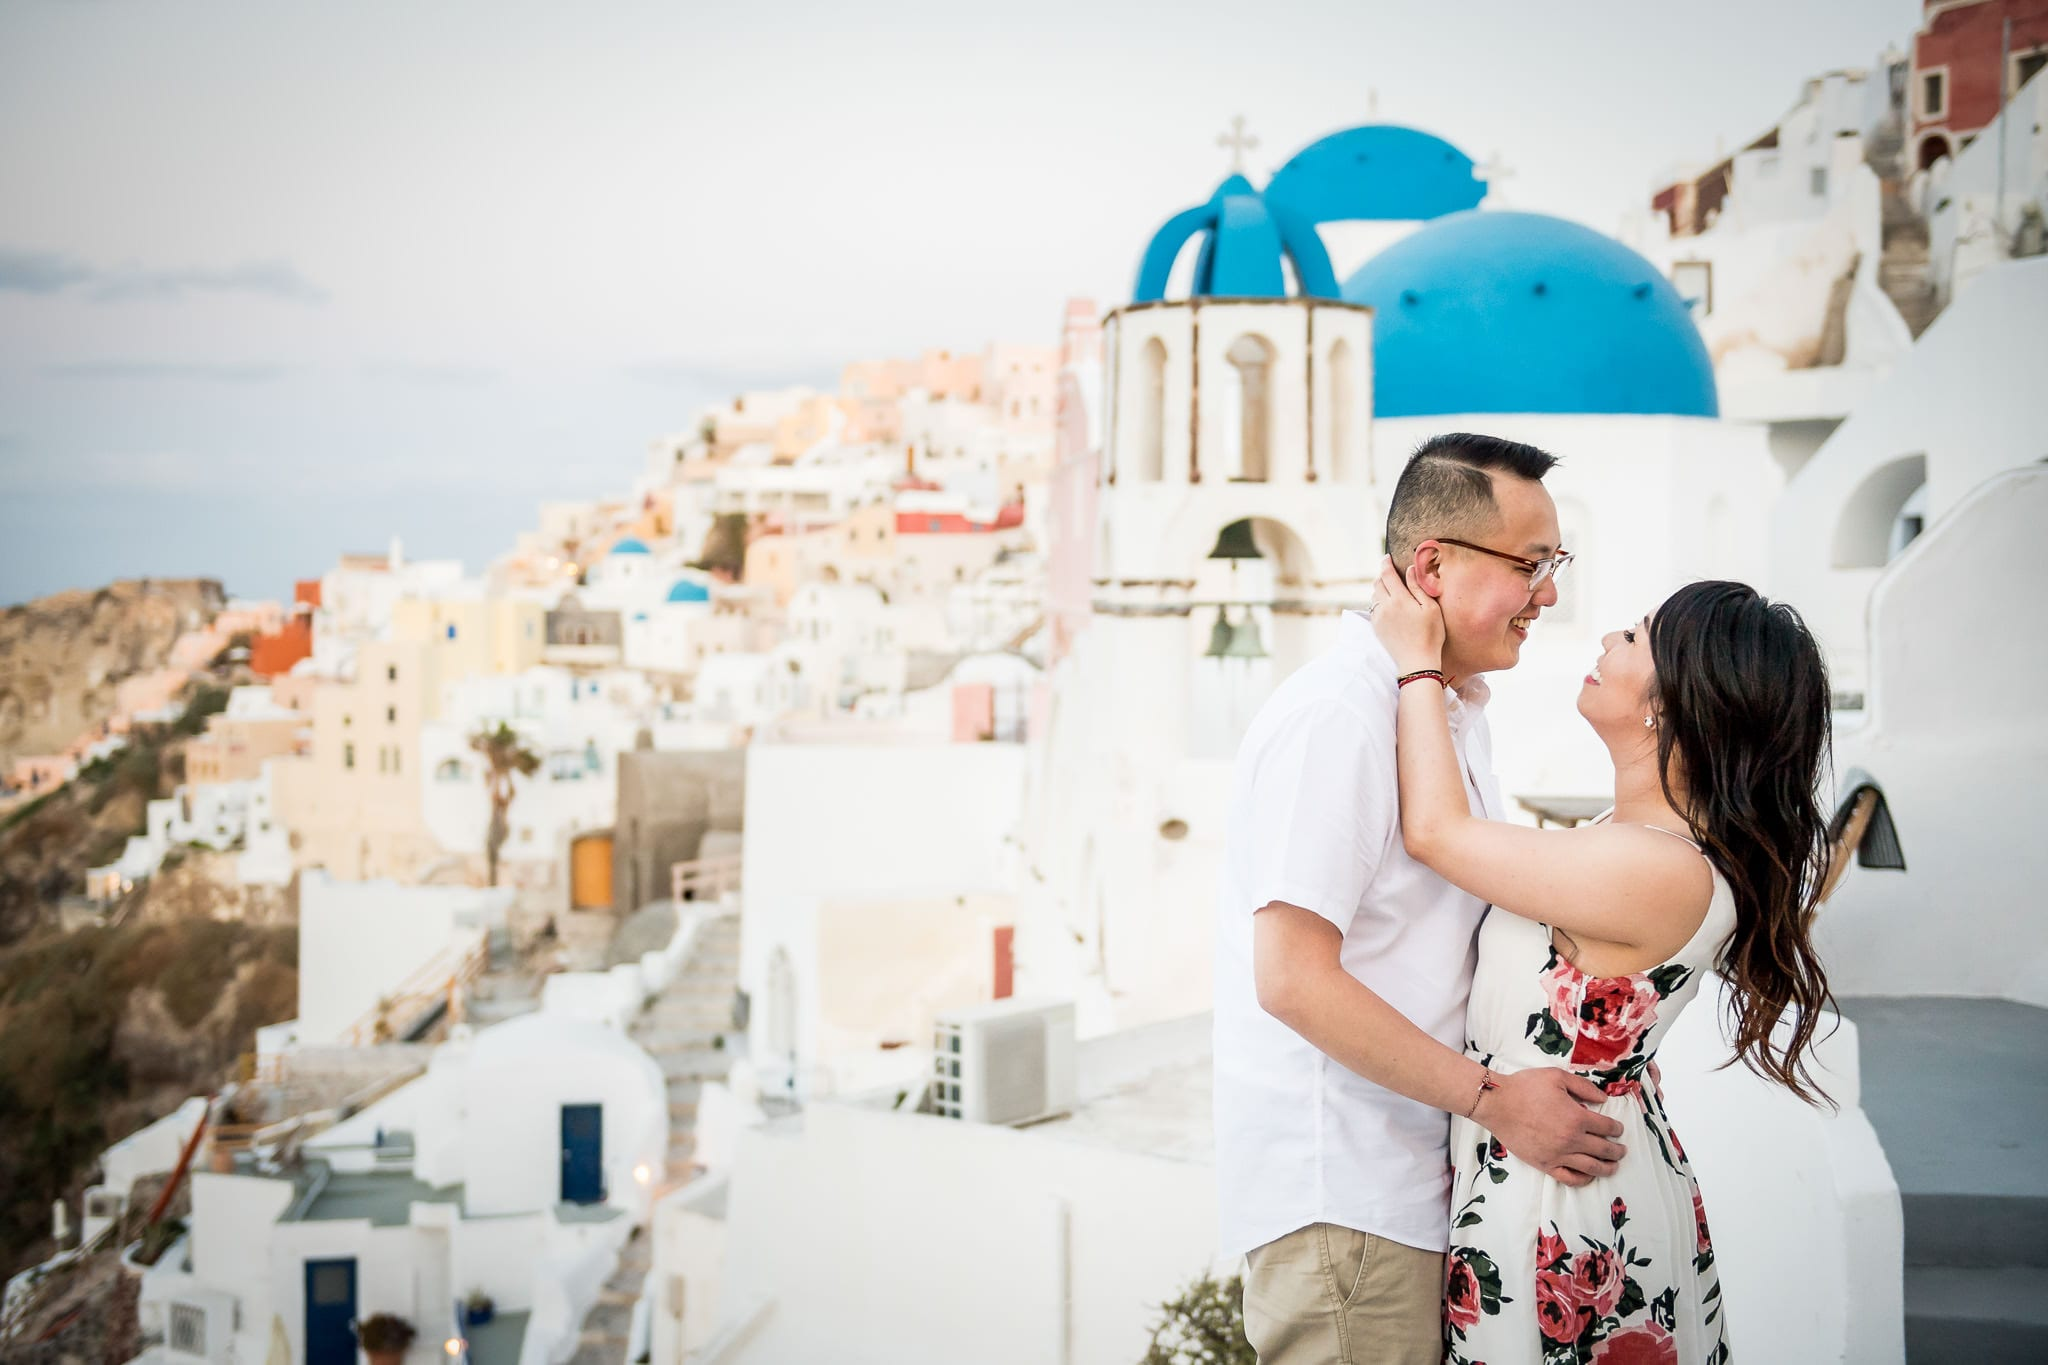 Santorini Honeymoon photo session image of a couple smiling at each other as they go in for a kiss, with the colorful Santorini island village of Oia in the background